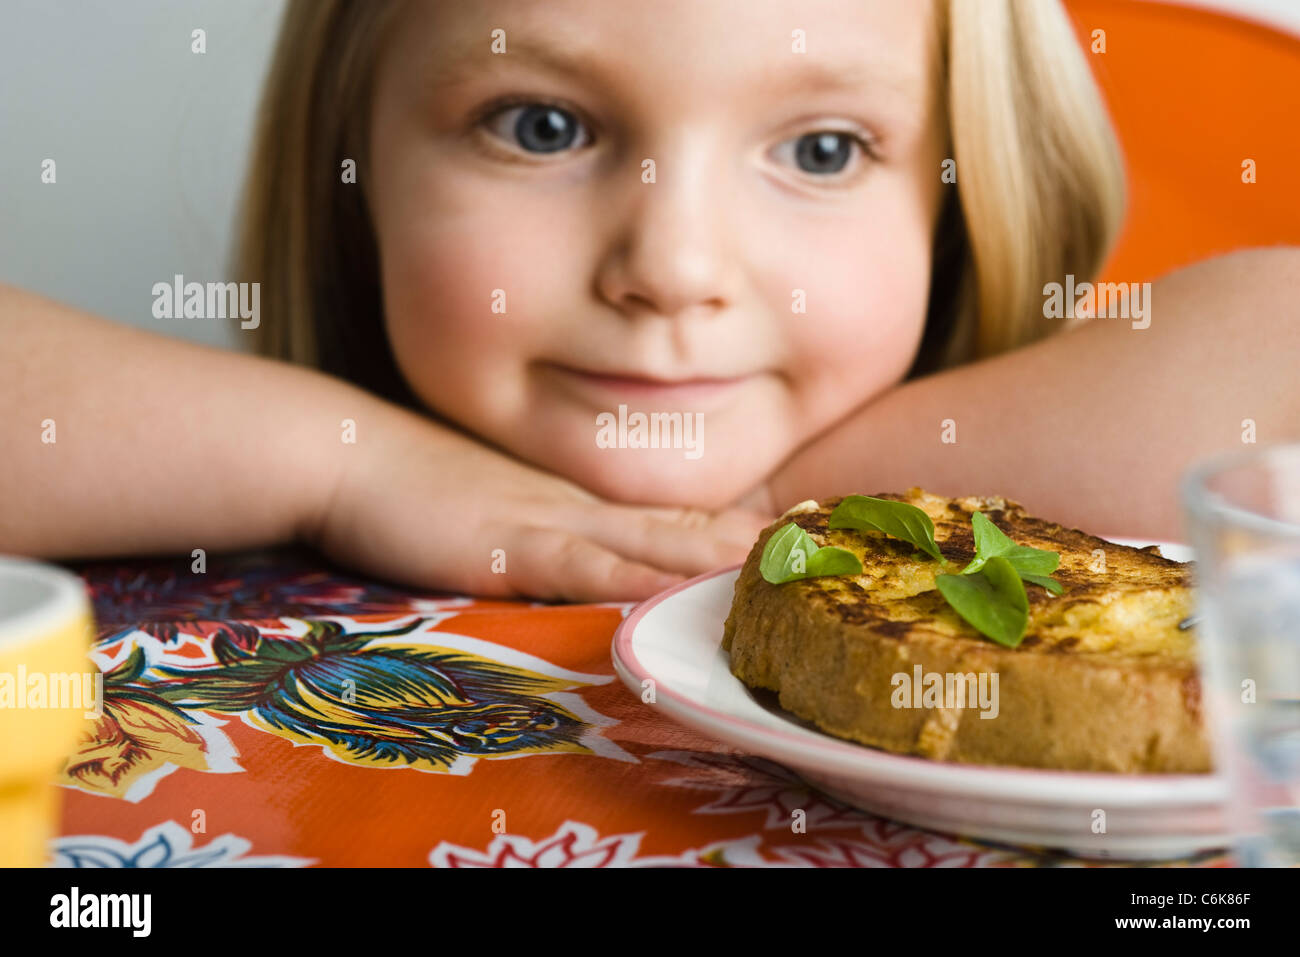 Little girl preparing to eat savory french toast - Stock Image